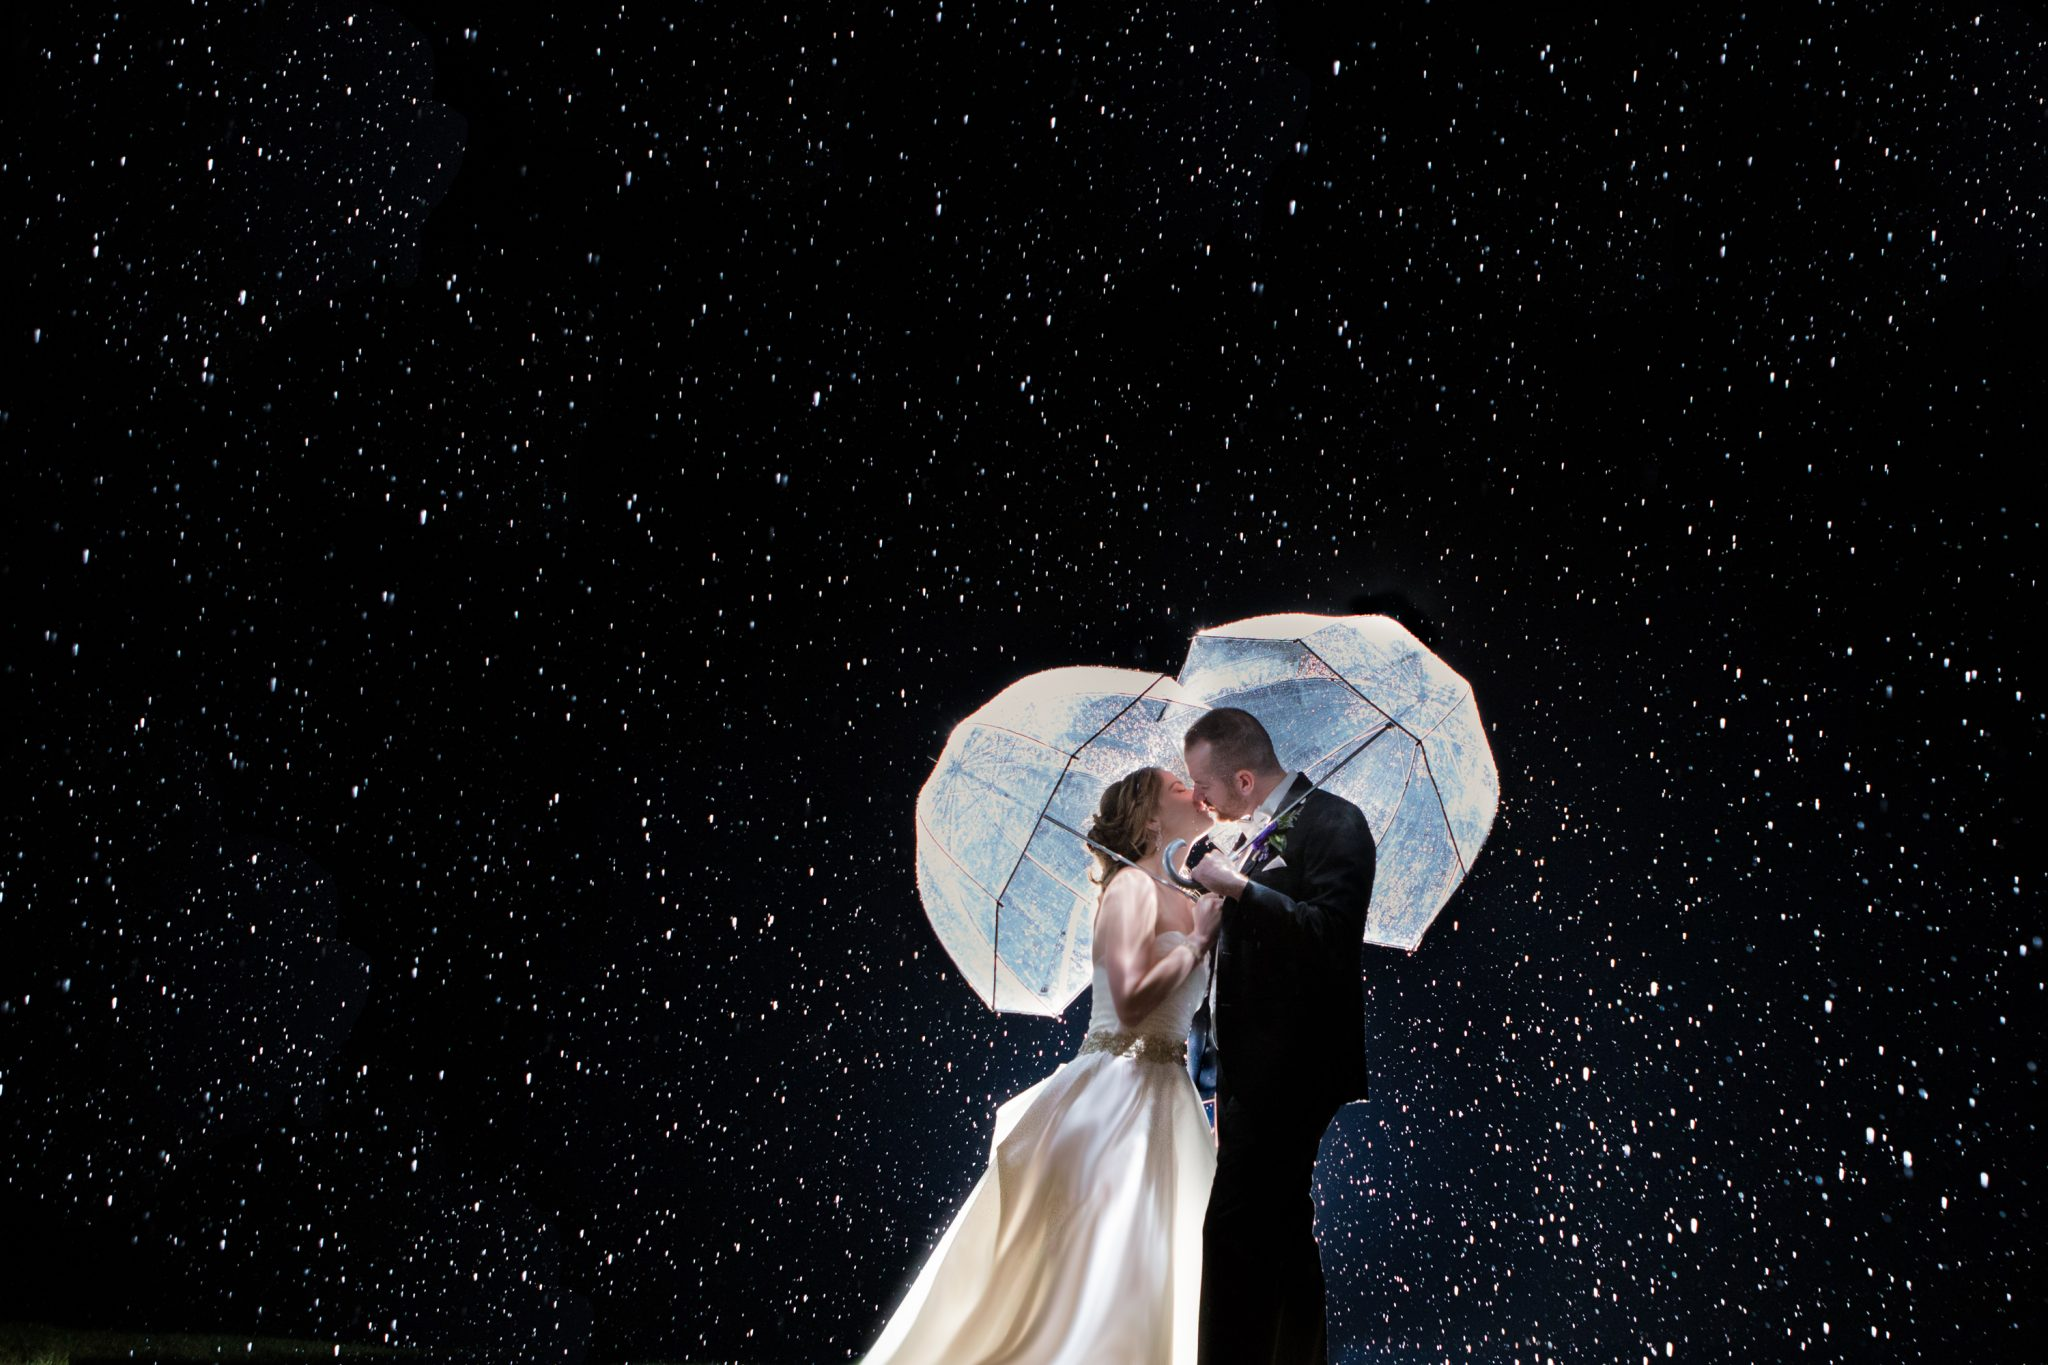 Rainy wedding portrait with umbrellas as night at Mountaintop in Vermont